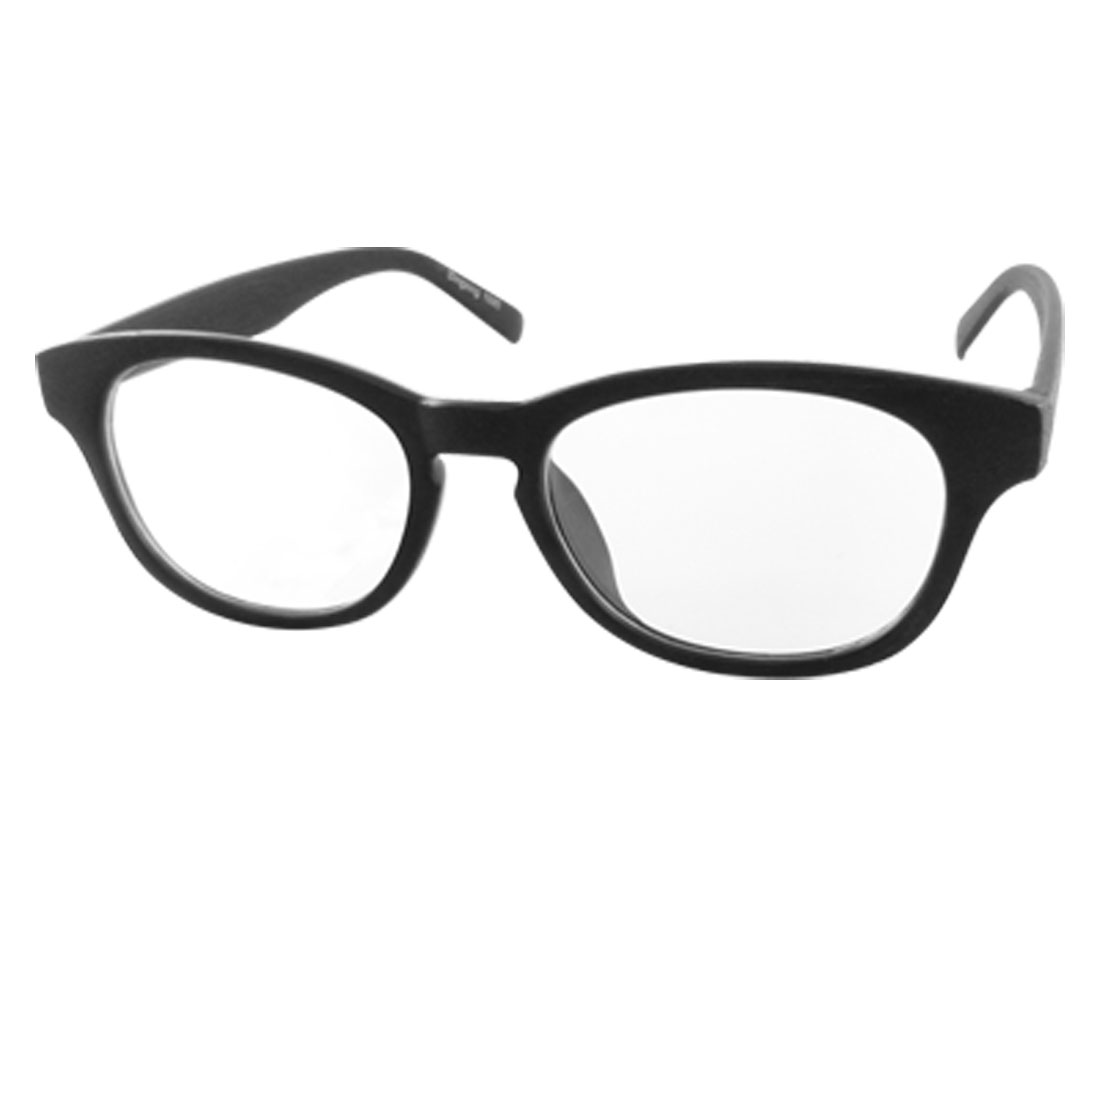 Black Wood Grain Plastic Full-rim UV Protection Glasses